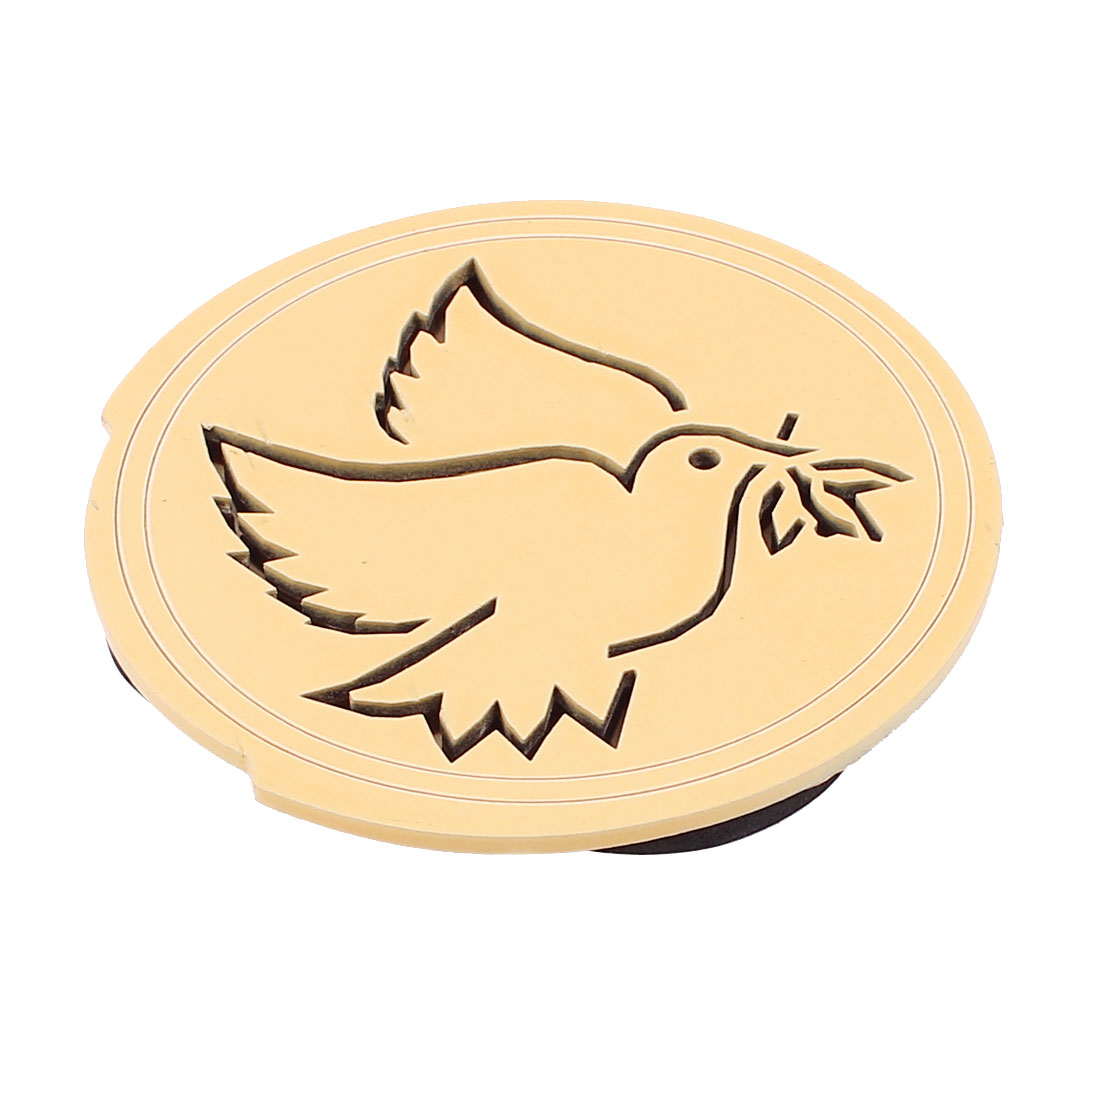 98mm-101mm Hollow Bird Print Wood Soundhole Hole Sound Cover Block for Acoustic Electric Guitar Feedback Buster